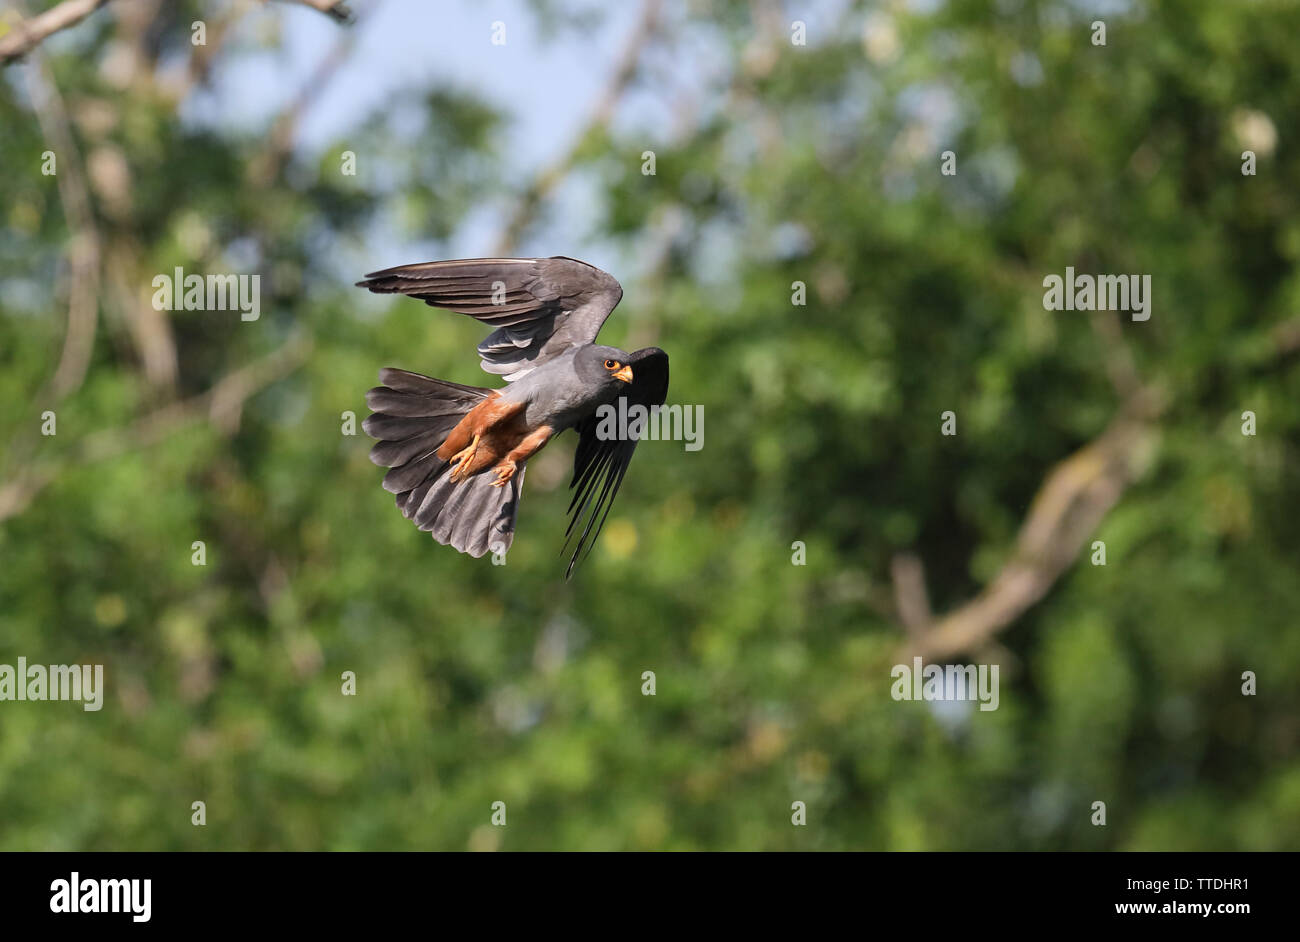 Male Red-footed falcon (Falco vespertinus) in flight. The species is listed as Near Threatened on the IUCN Red List. Photographed in Hortobagy, HU - Stock Image